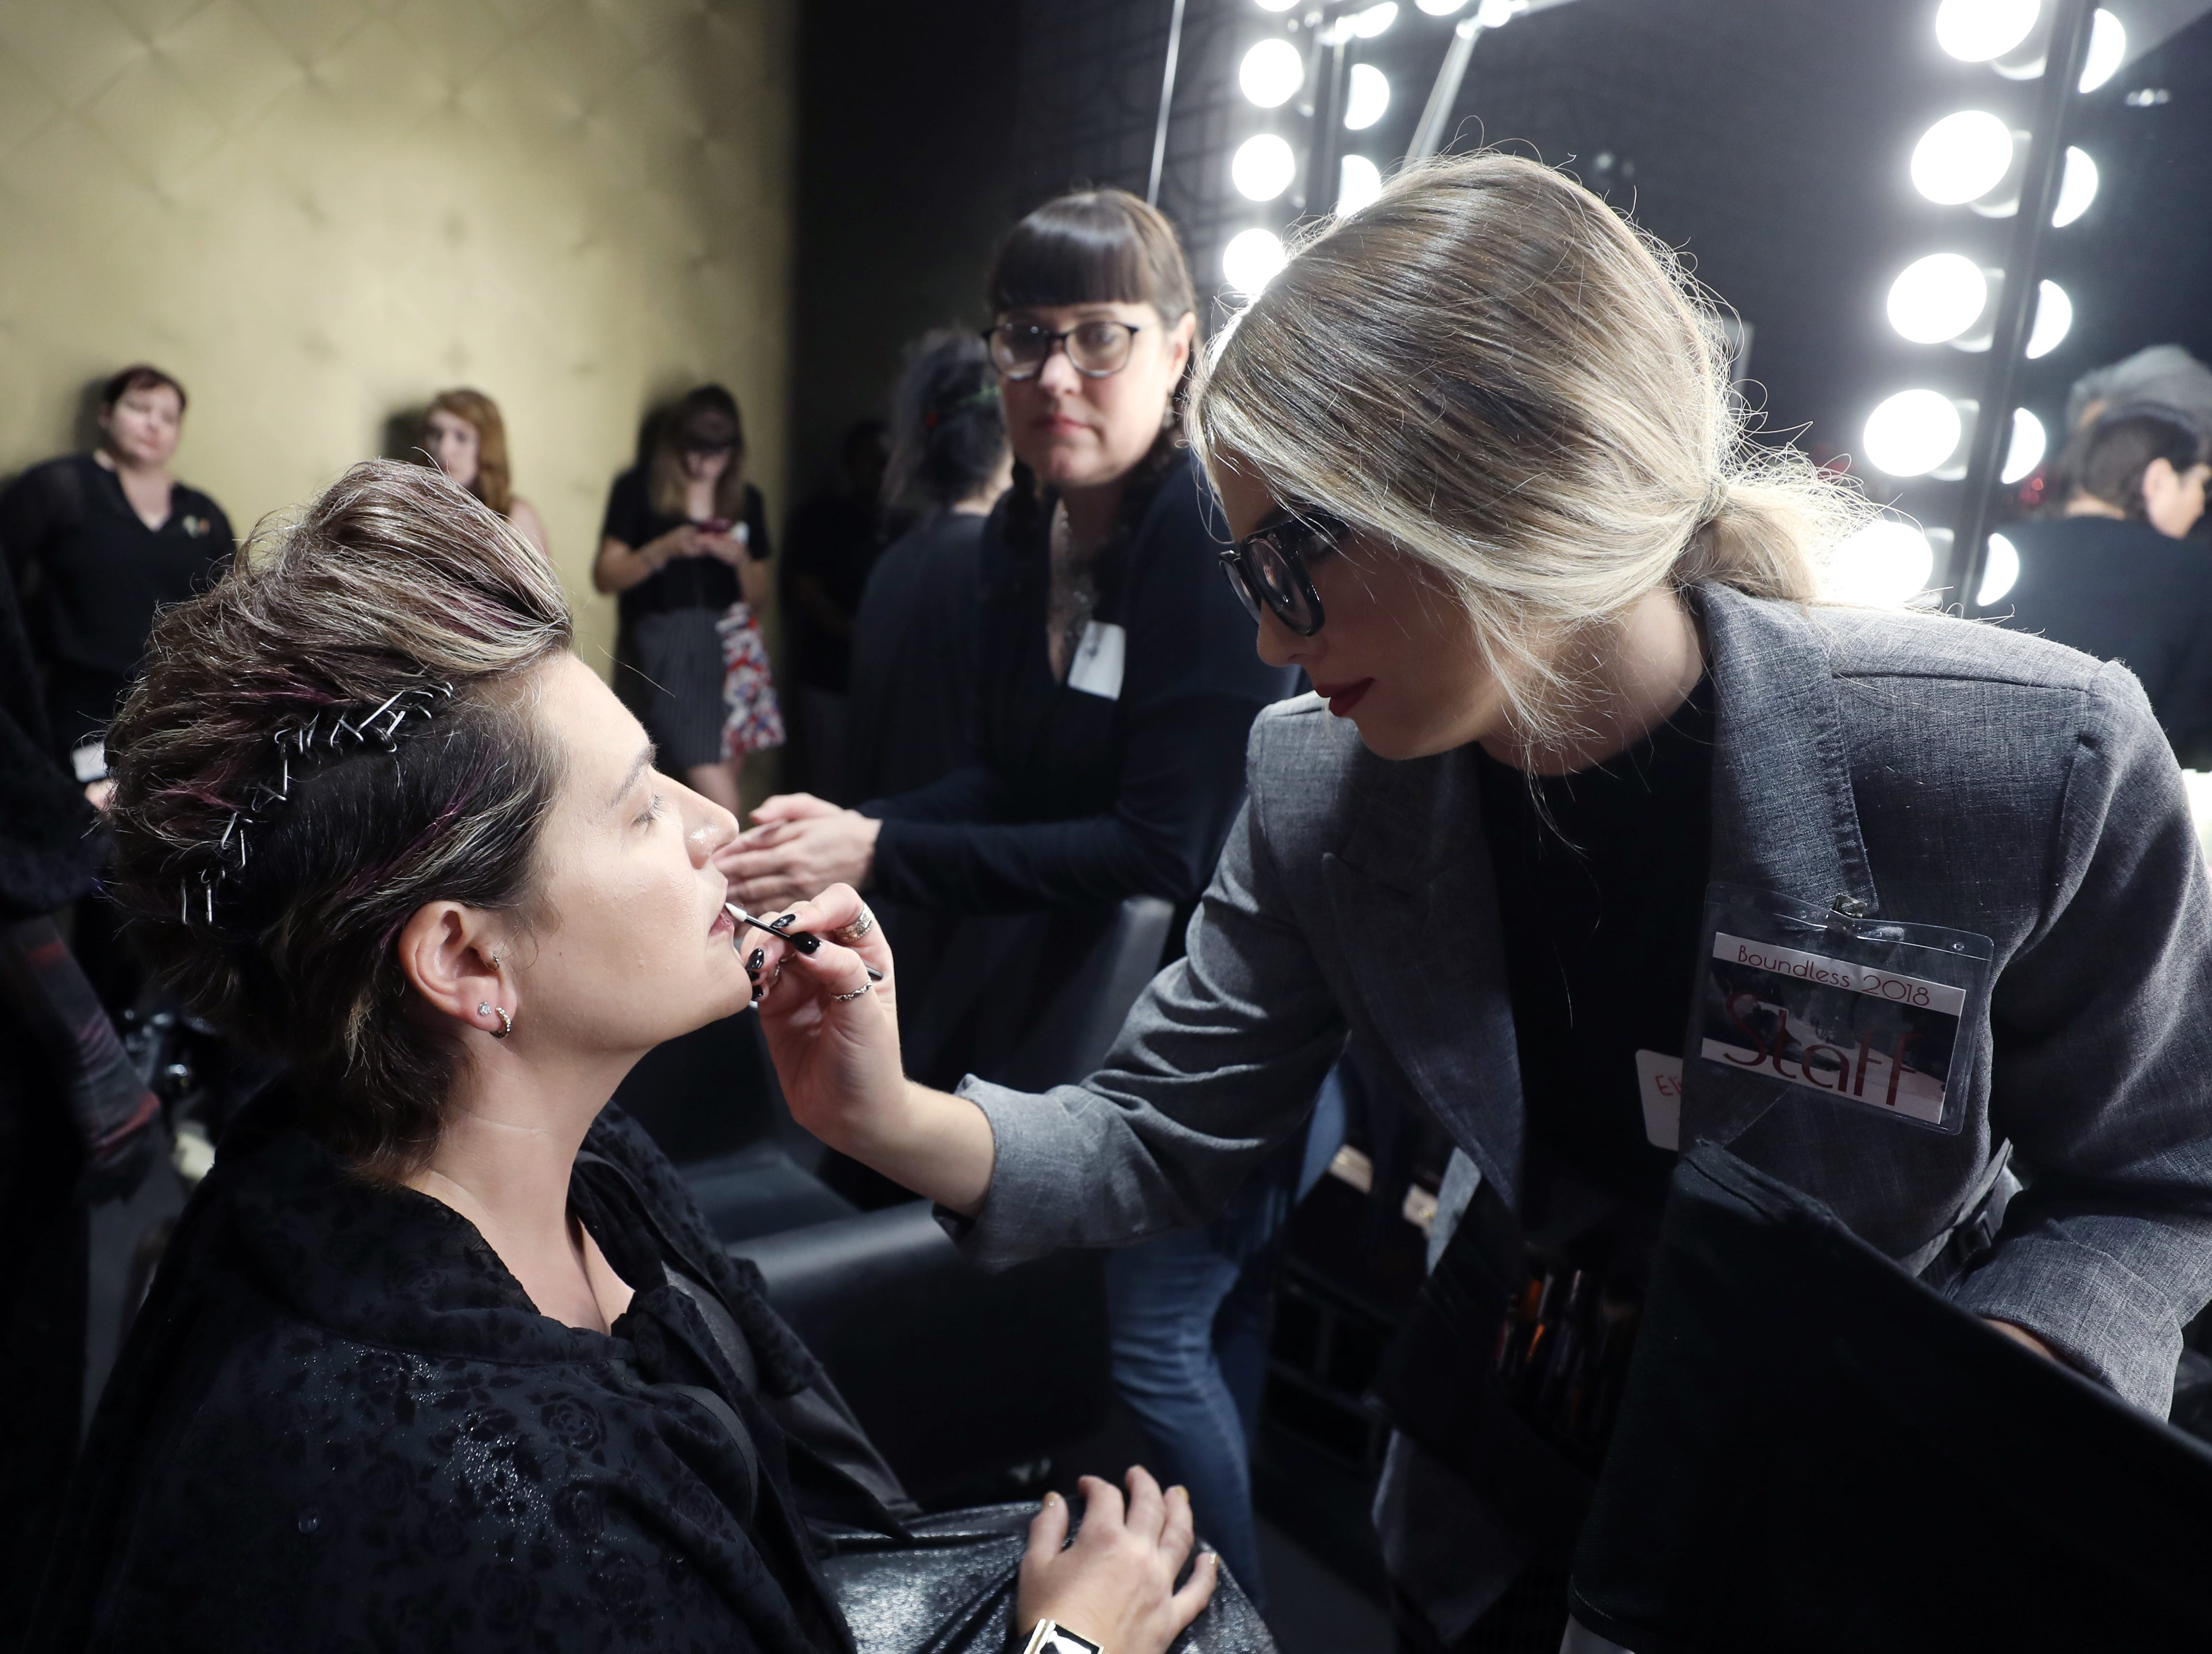 Elizabeth Wolf, right, applies makeup for Amy Burnett before the start of the Boundless 2018 fashion show held at Studio 615 on Saturday, September 8, 2018.